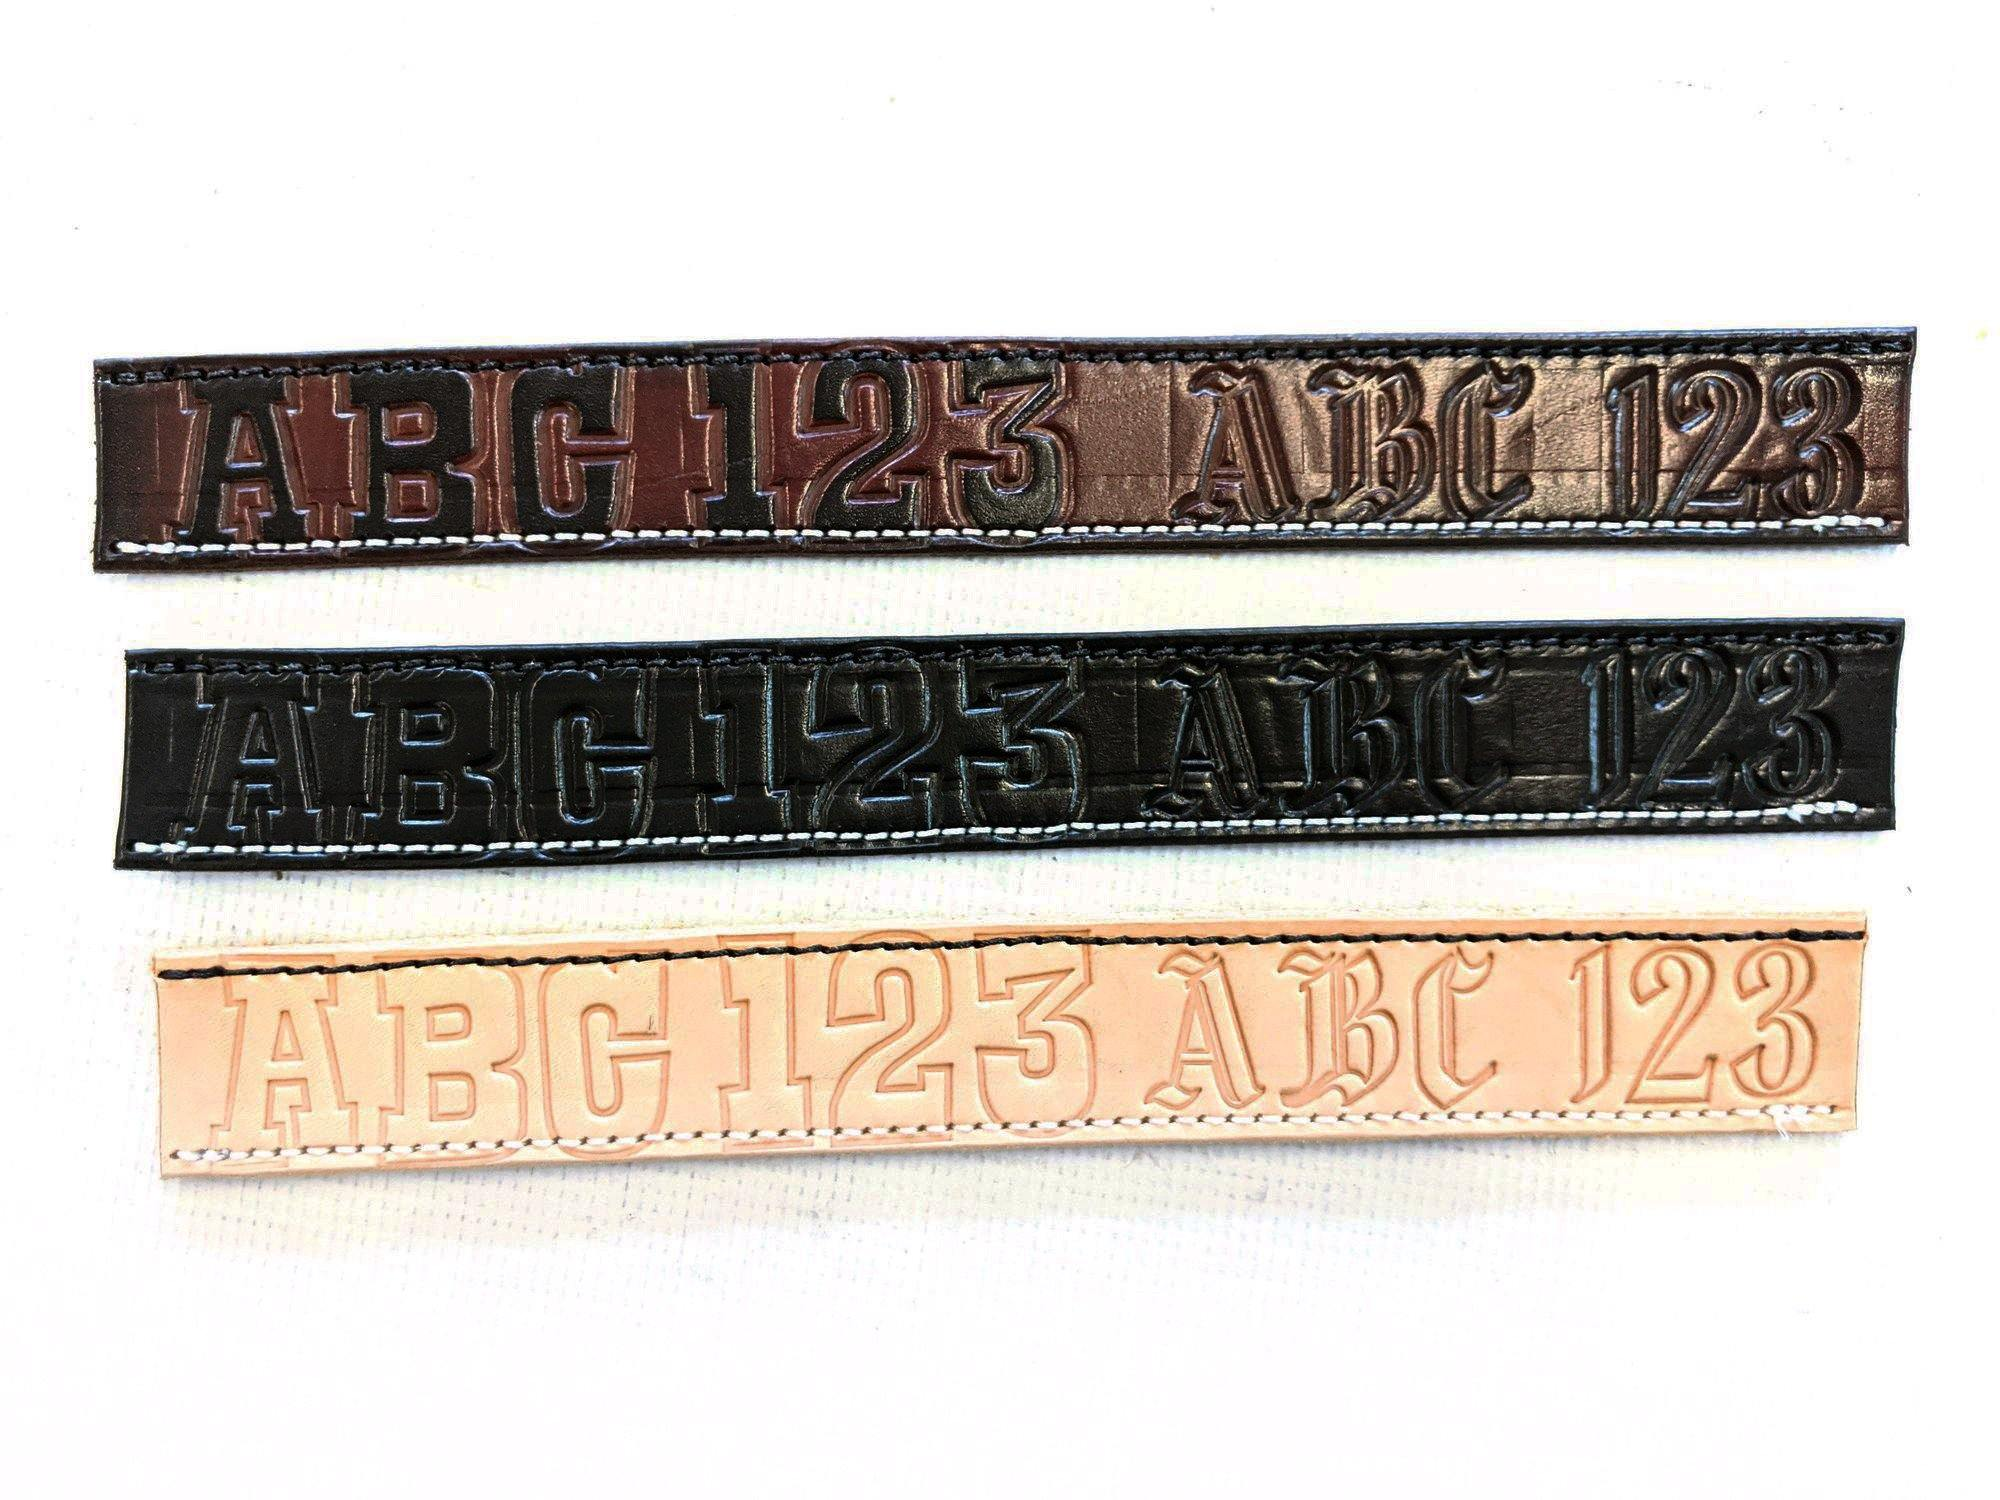 Build Your Own Leather Belt - Personalized Text - Anvil Customs